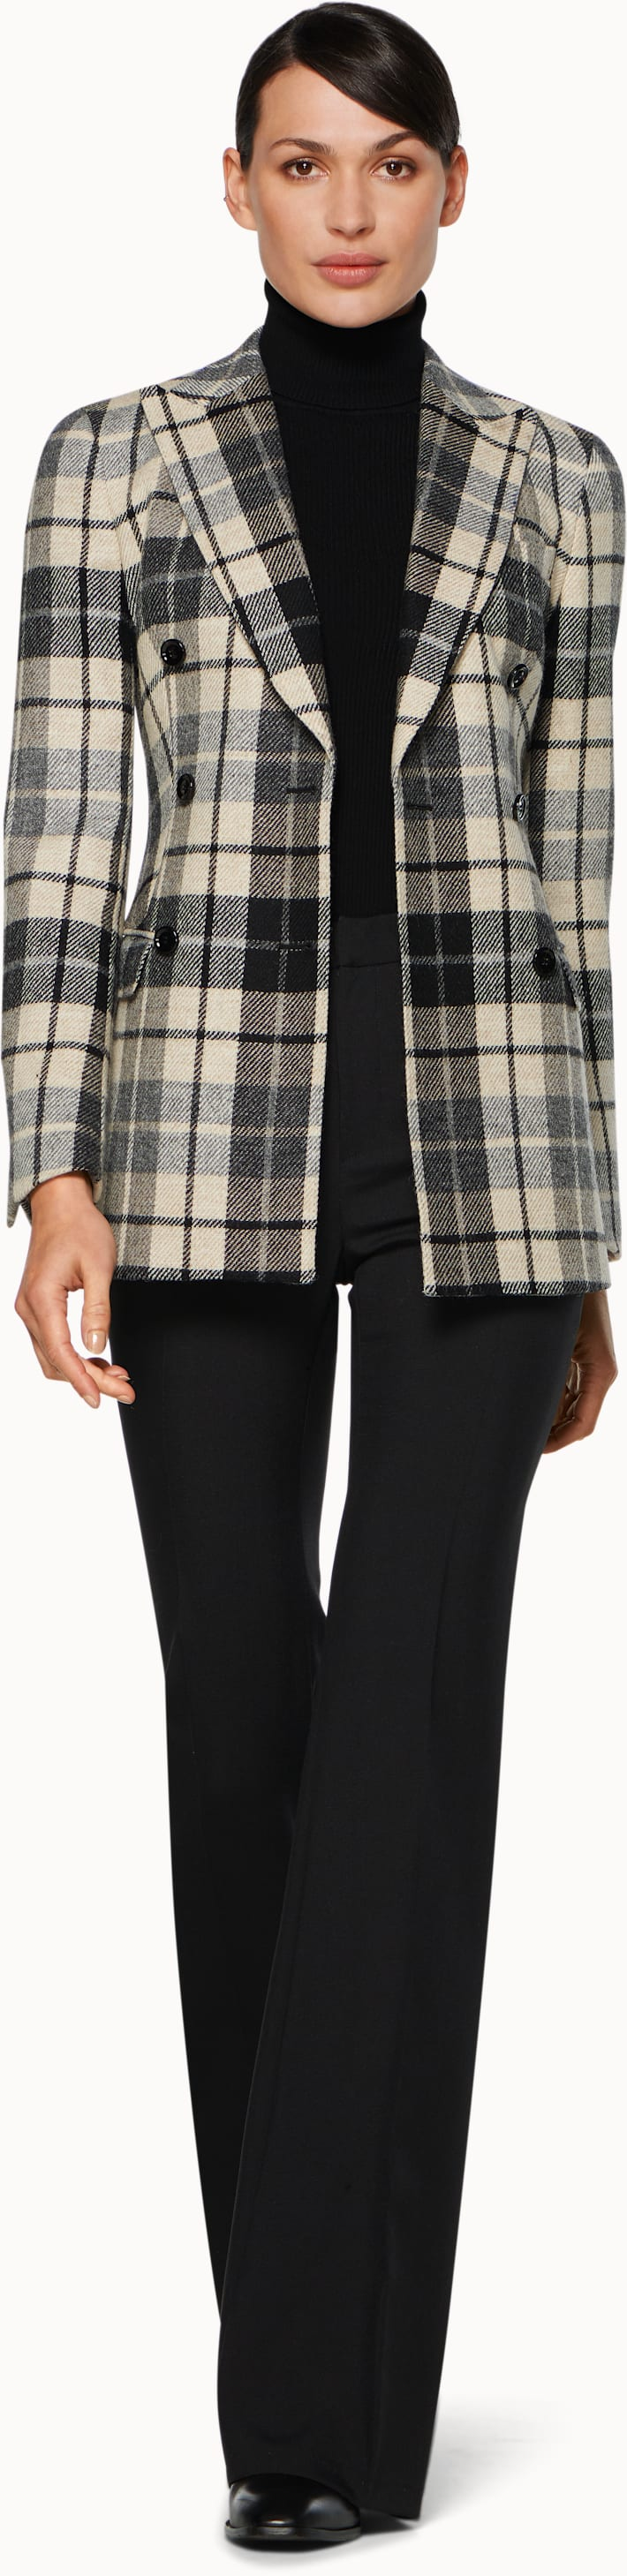 Cameron Black & White Plaid Suit